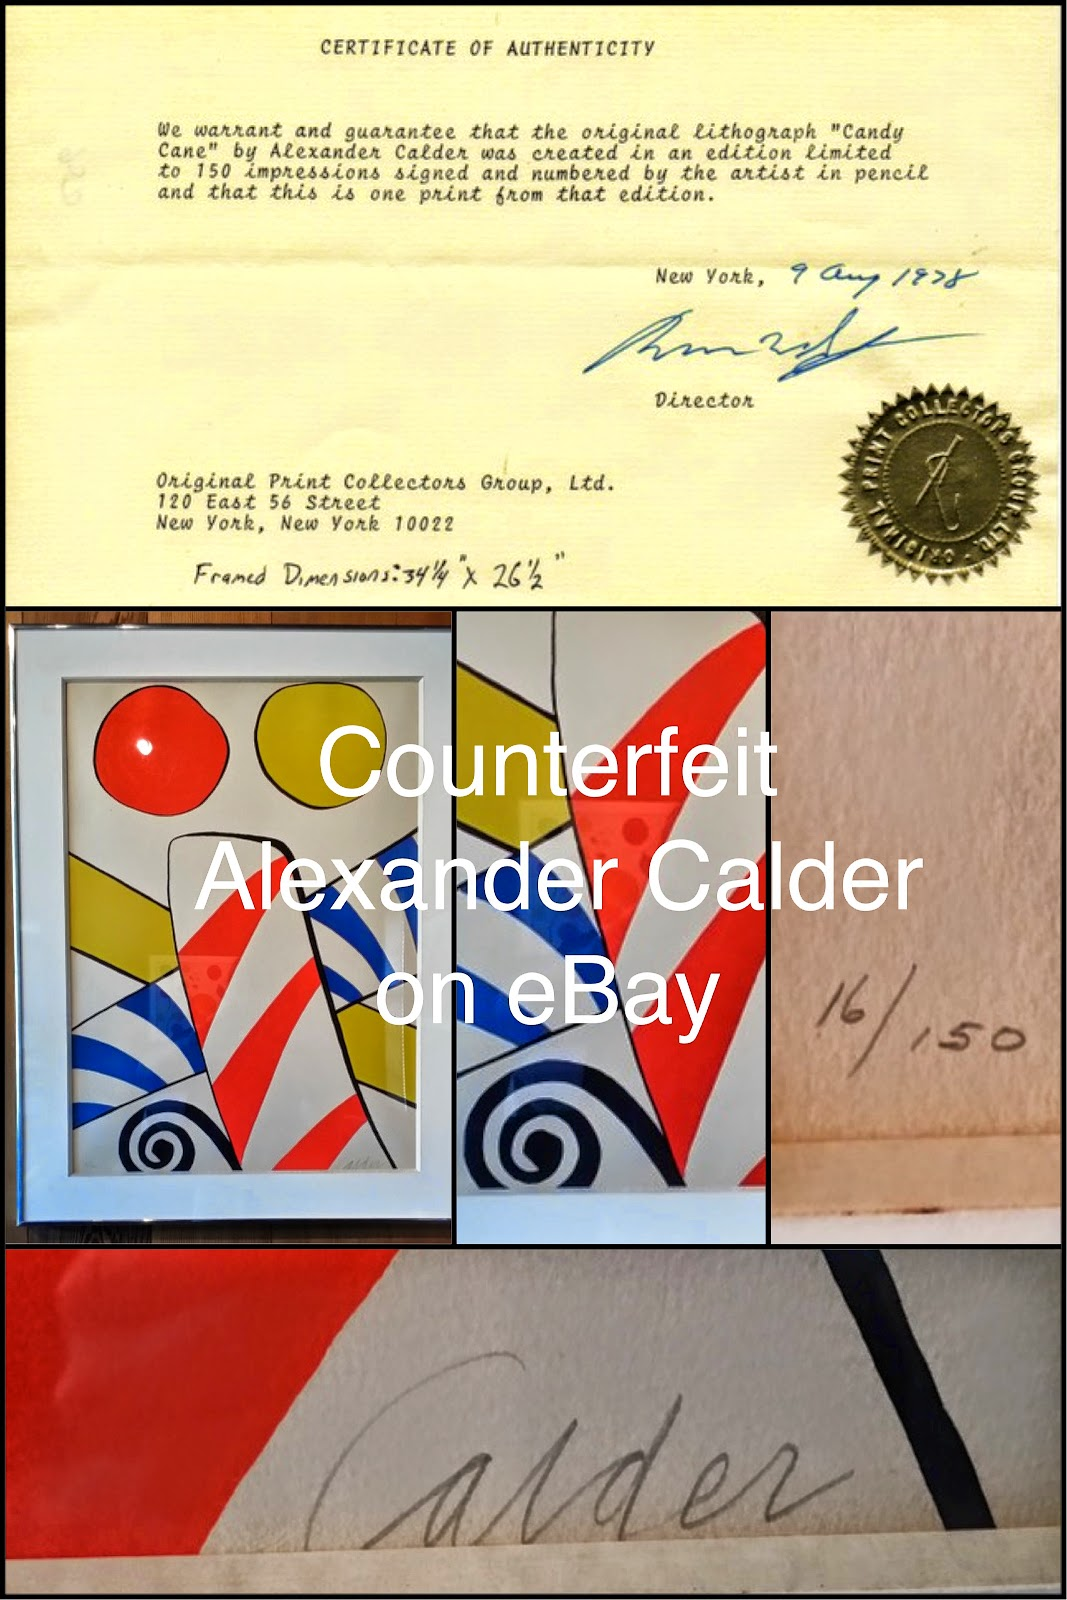 Images used by the-strongman on eBay to offer Counterfeit Calder